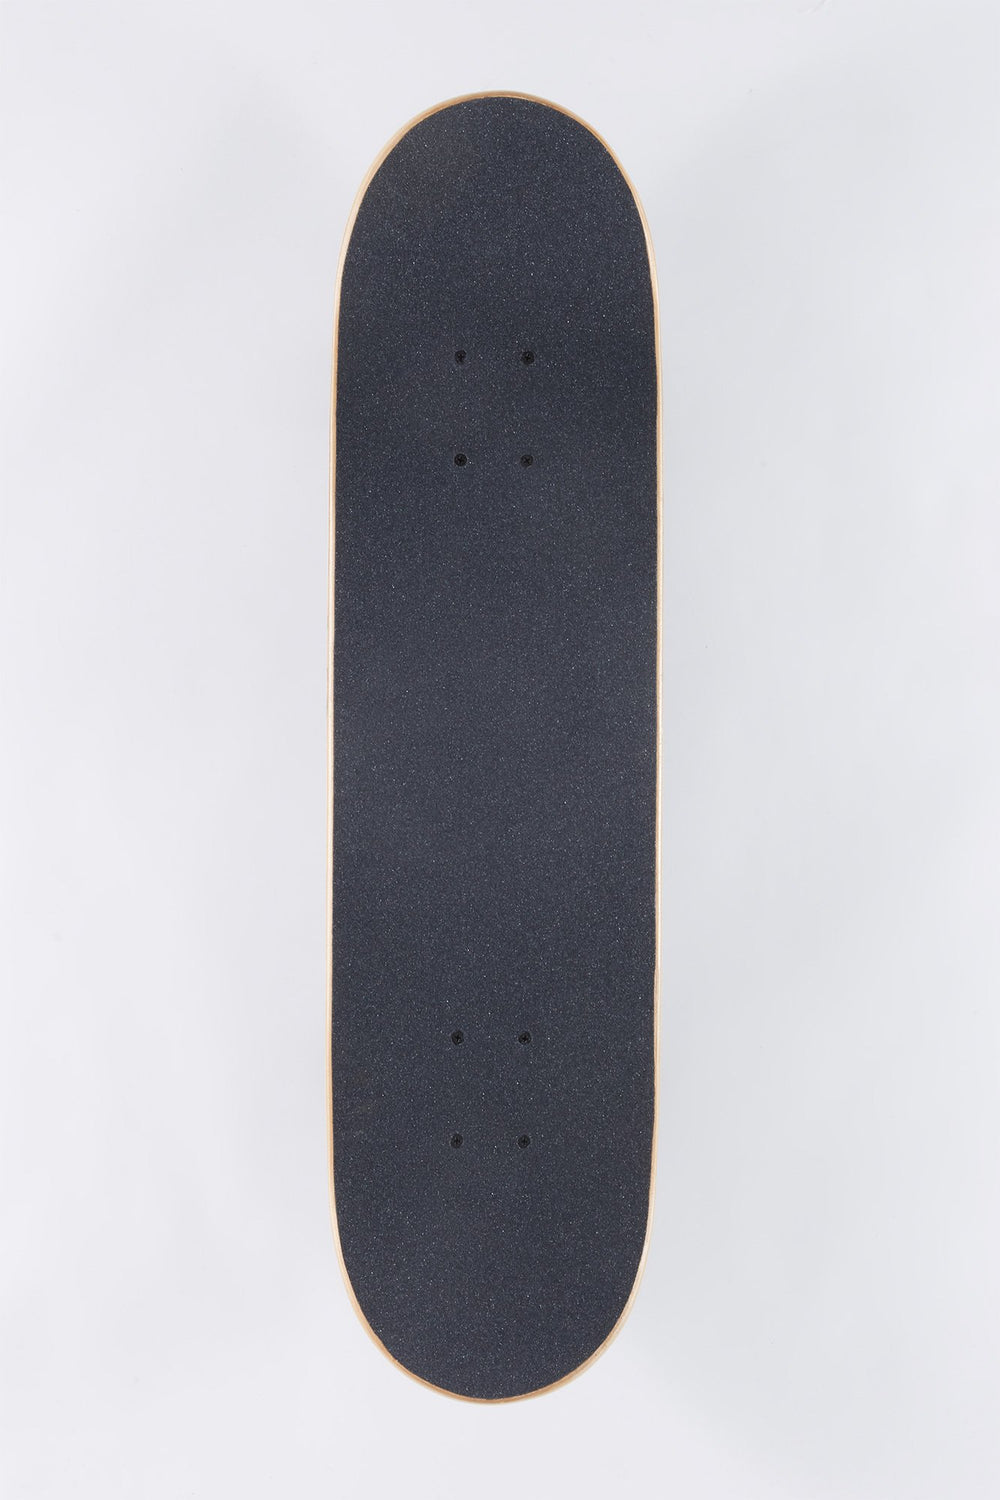 Wonderful Black Marble Skateboard 8